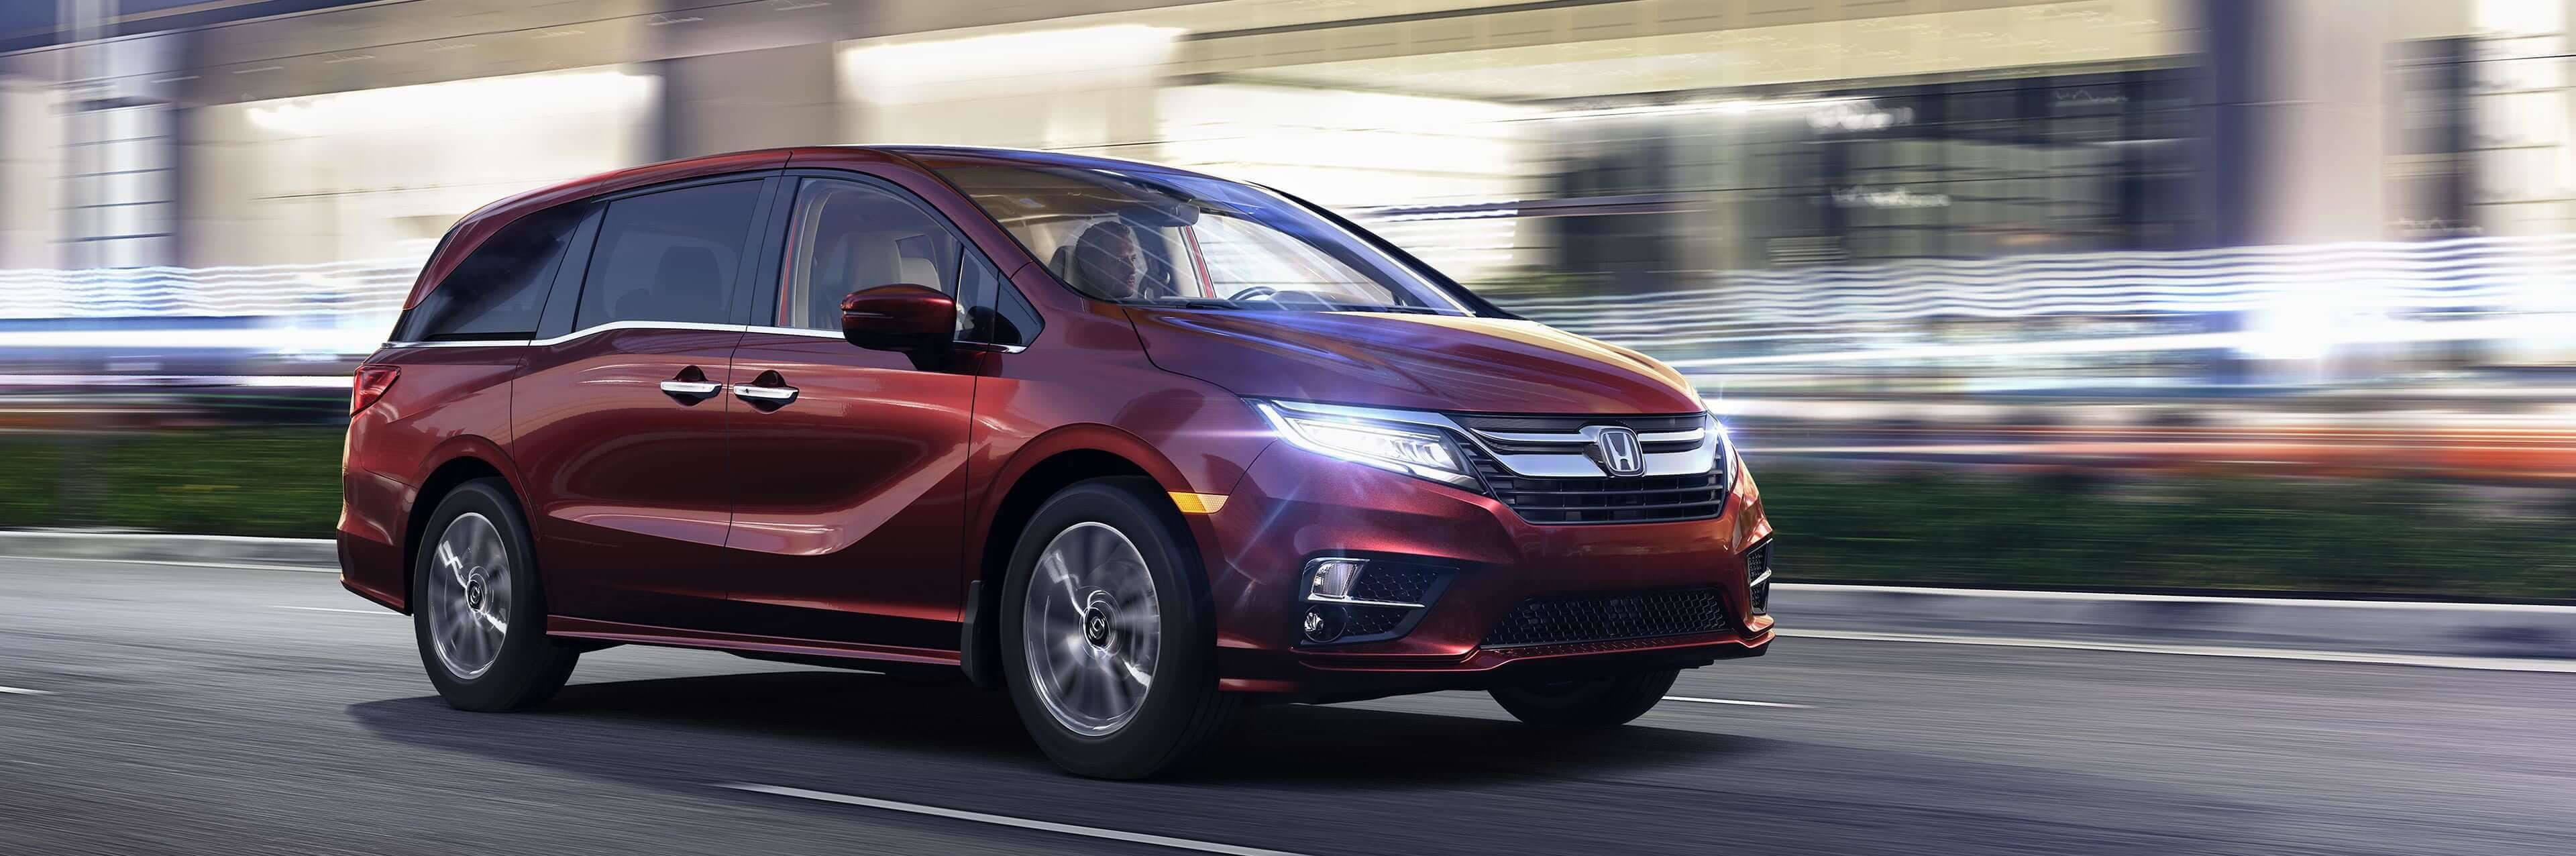 2020 Honda Odyssey shown in red driving on a late night city street